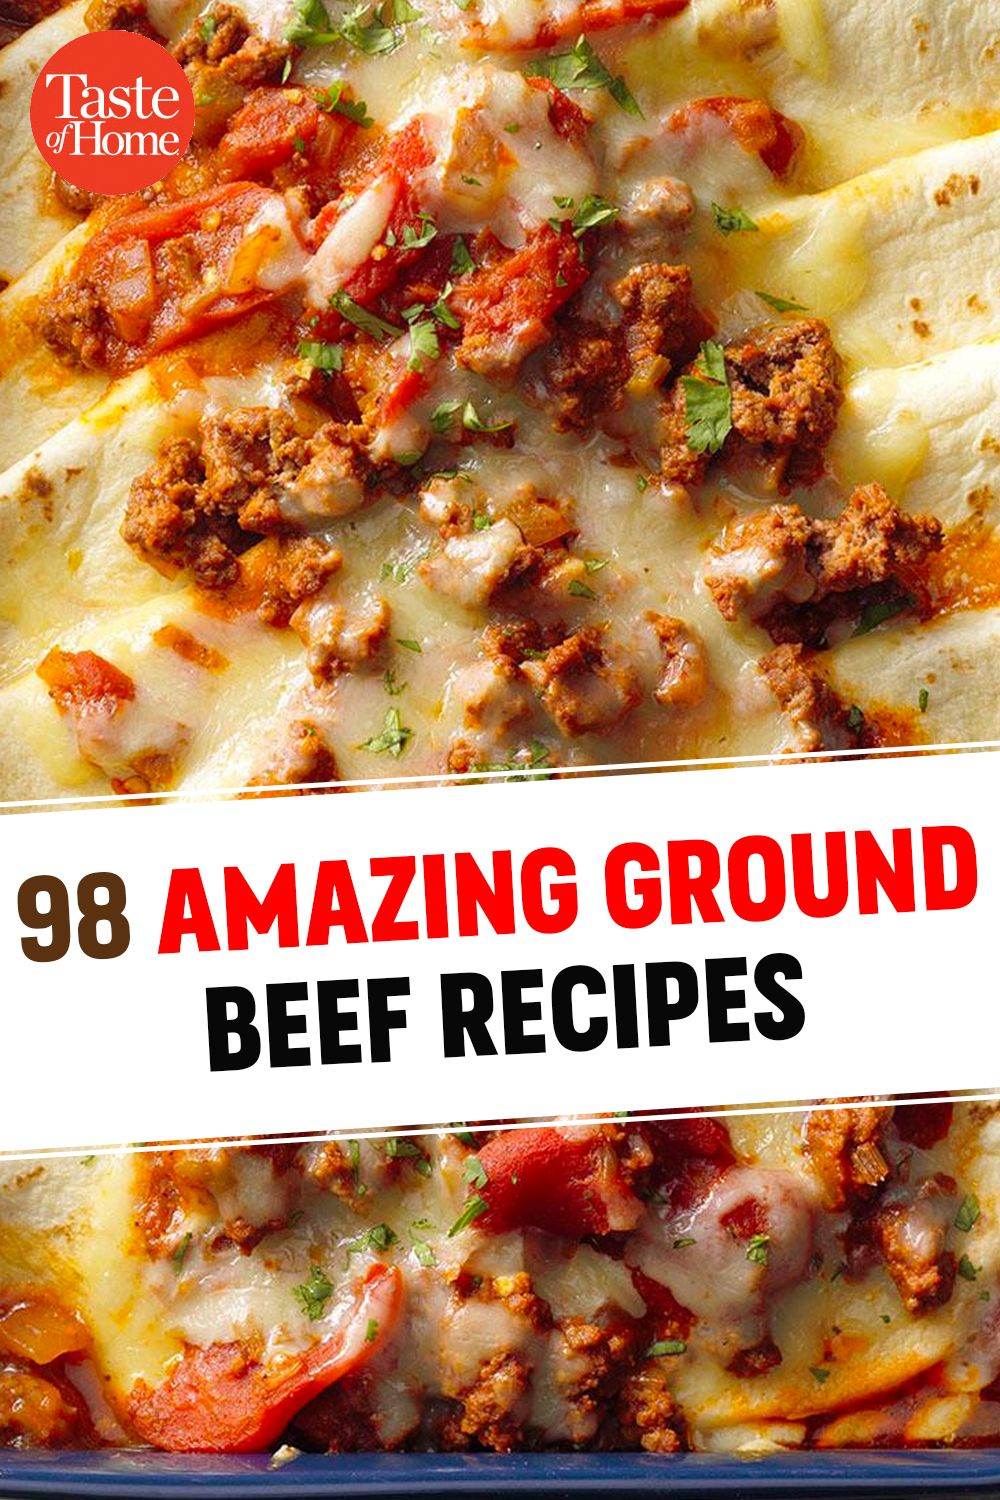 101 Recipes Using 1 Pound Of Ground Beef In 2020 Ground Beef Recipes Recipes Beef Recipes